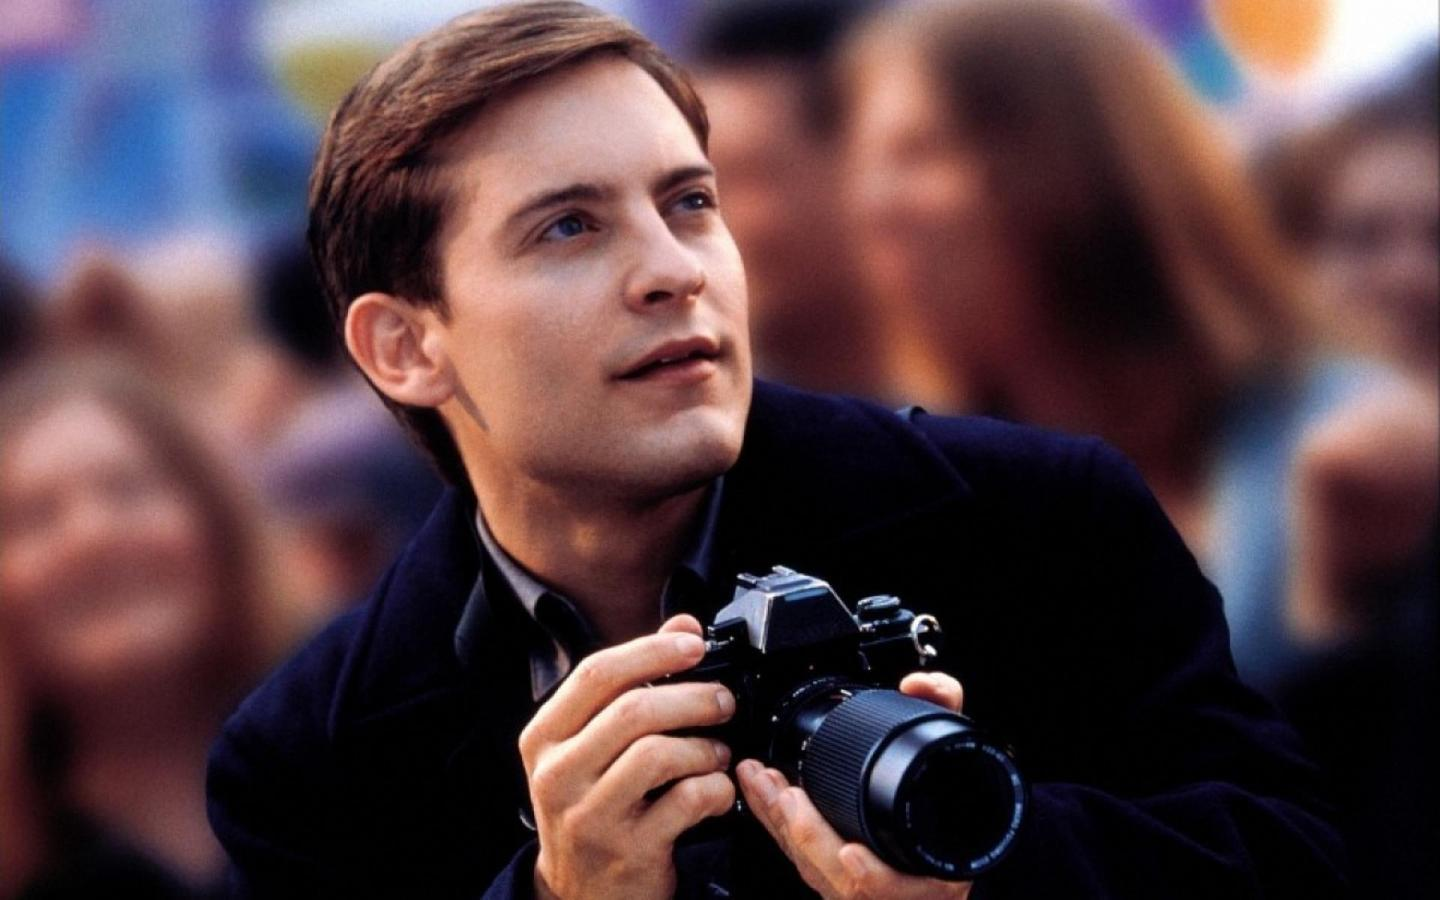 1440x900 - Tobey Maguire Wallpapers 3